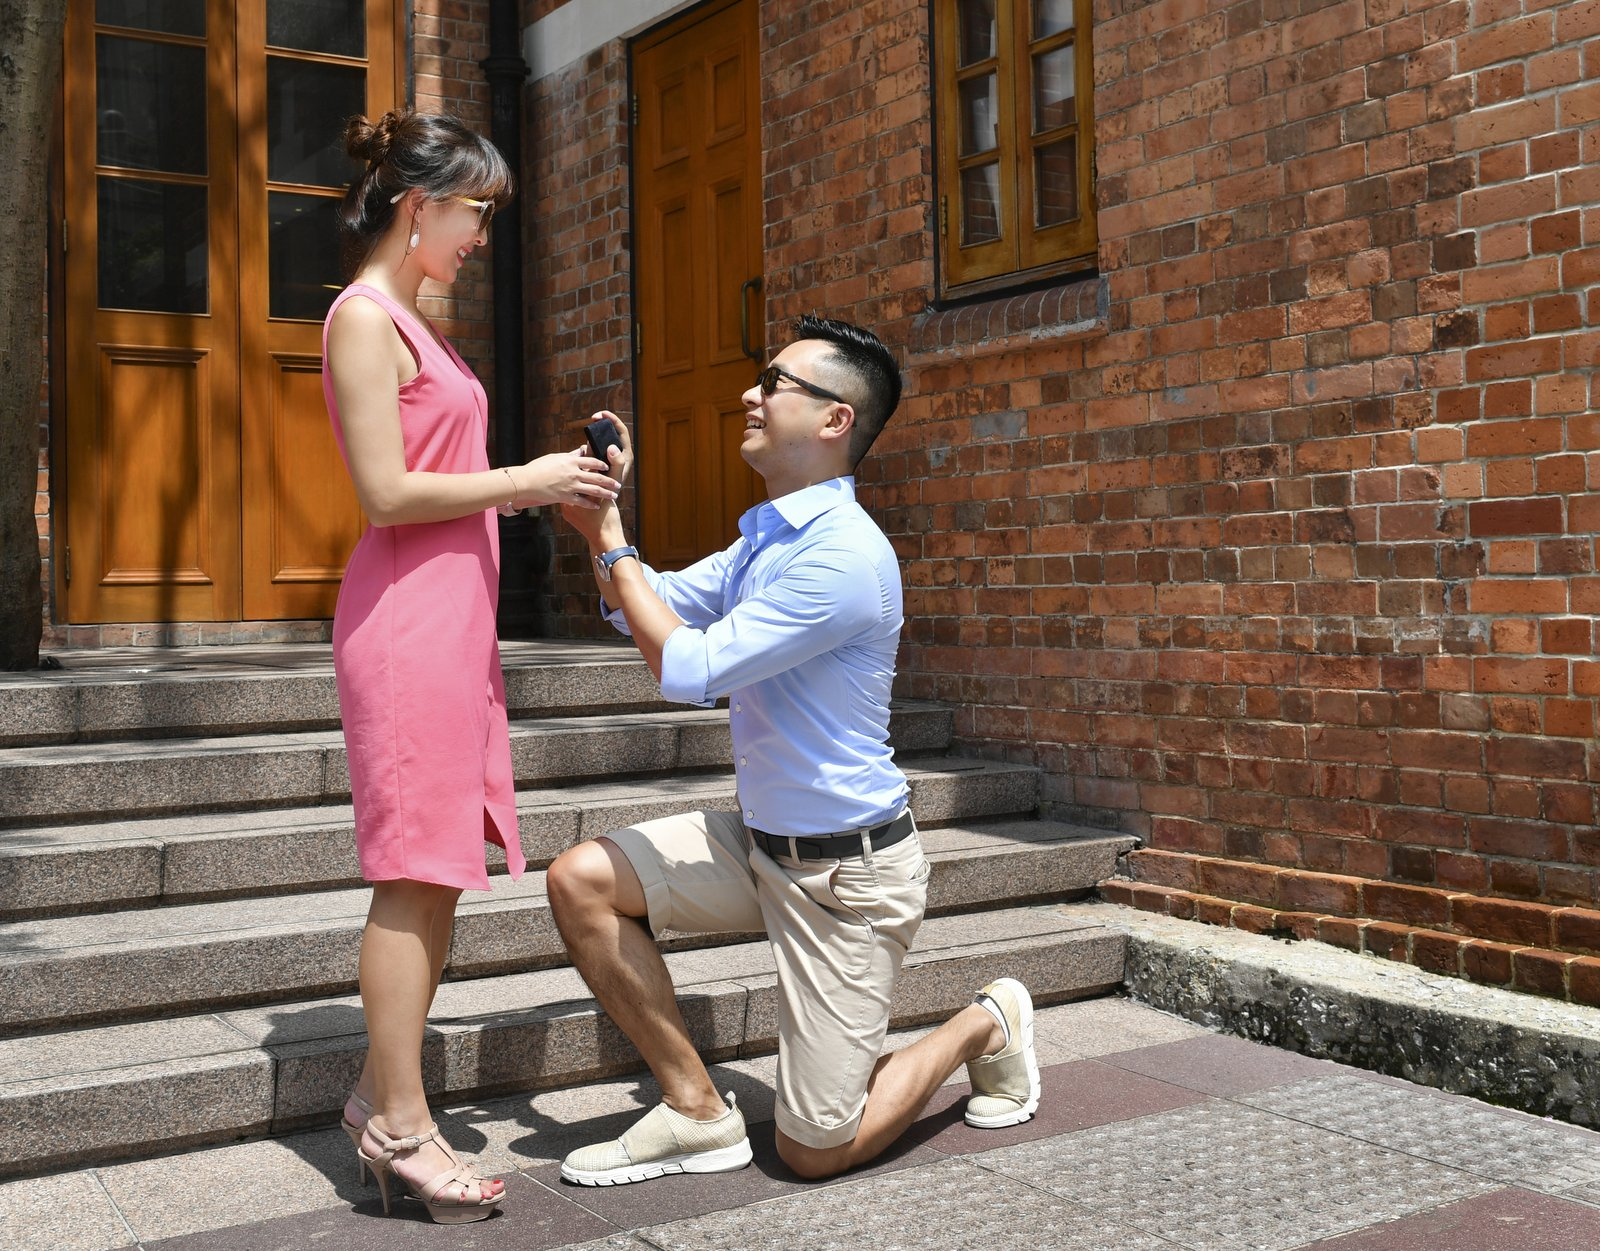 Proposal photographer Hong Kong